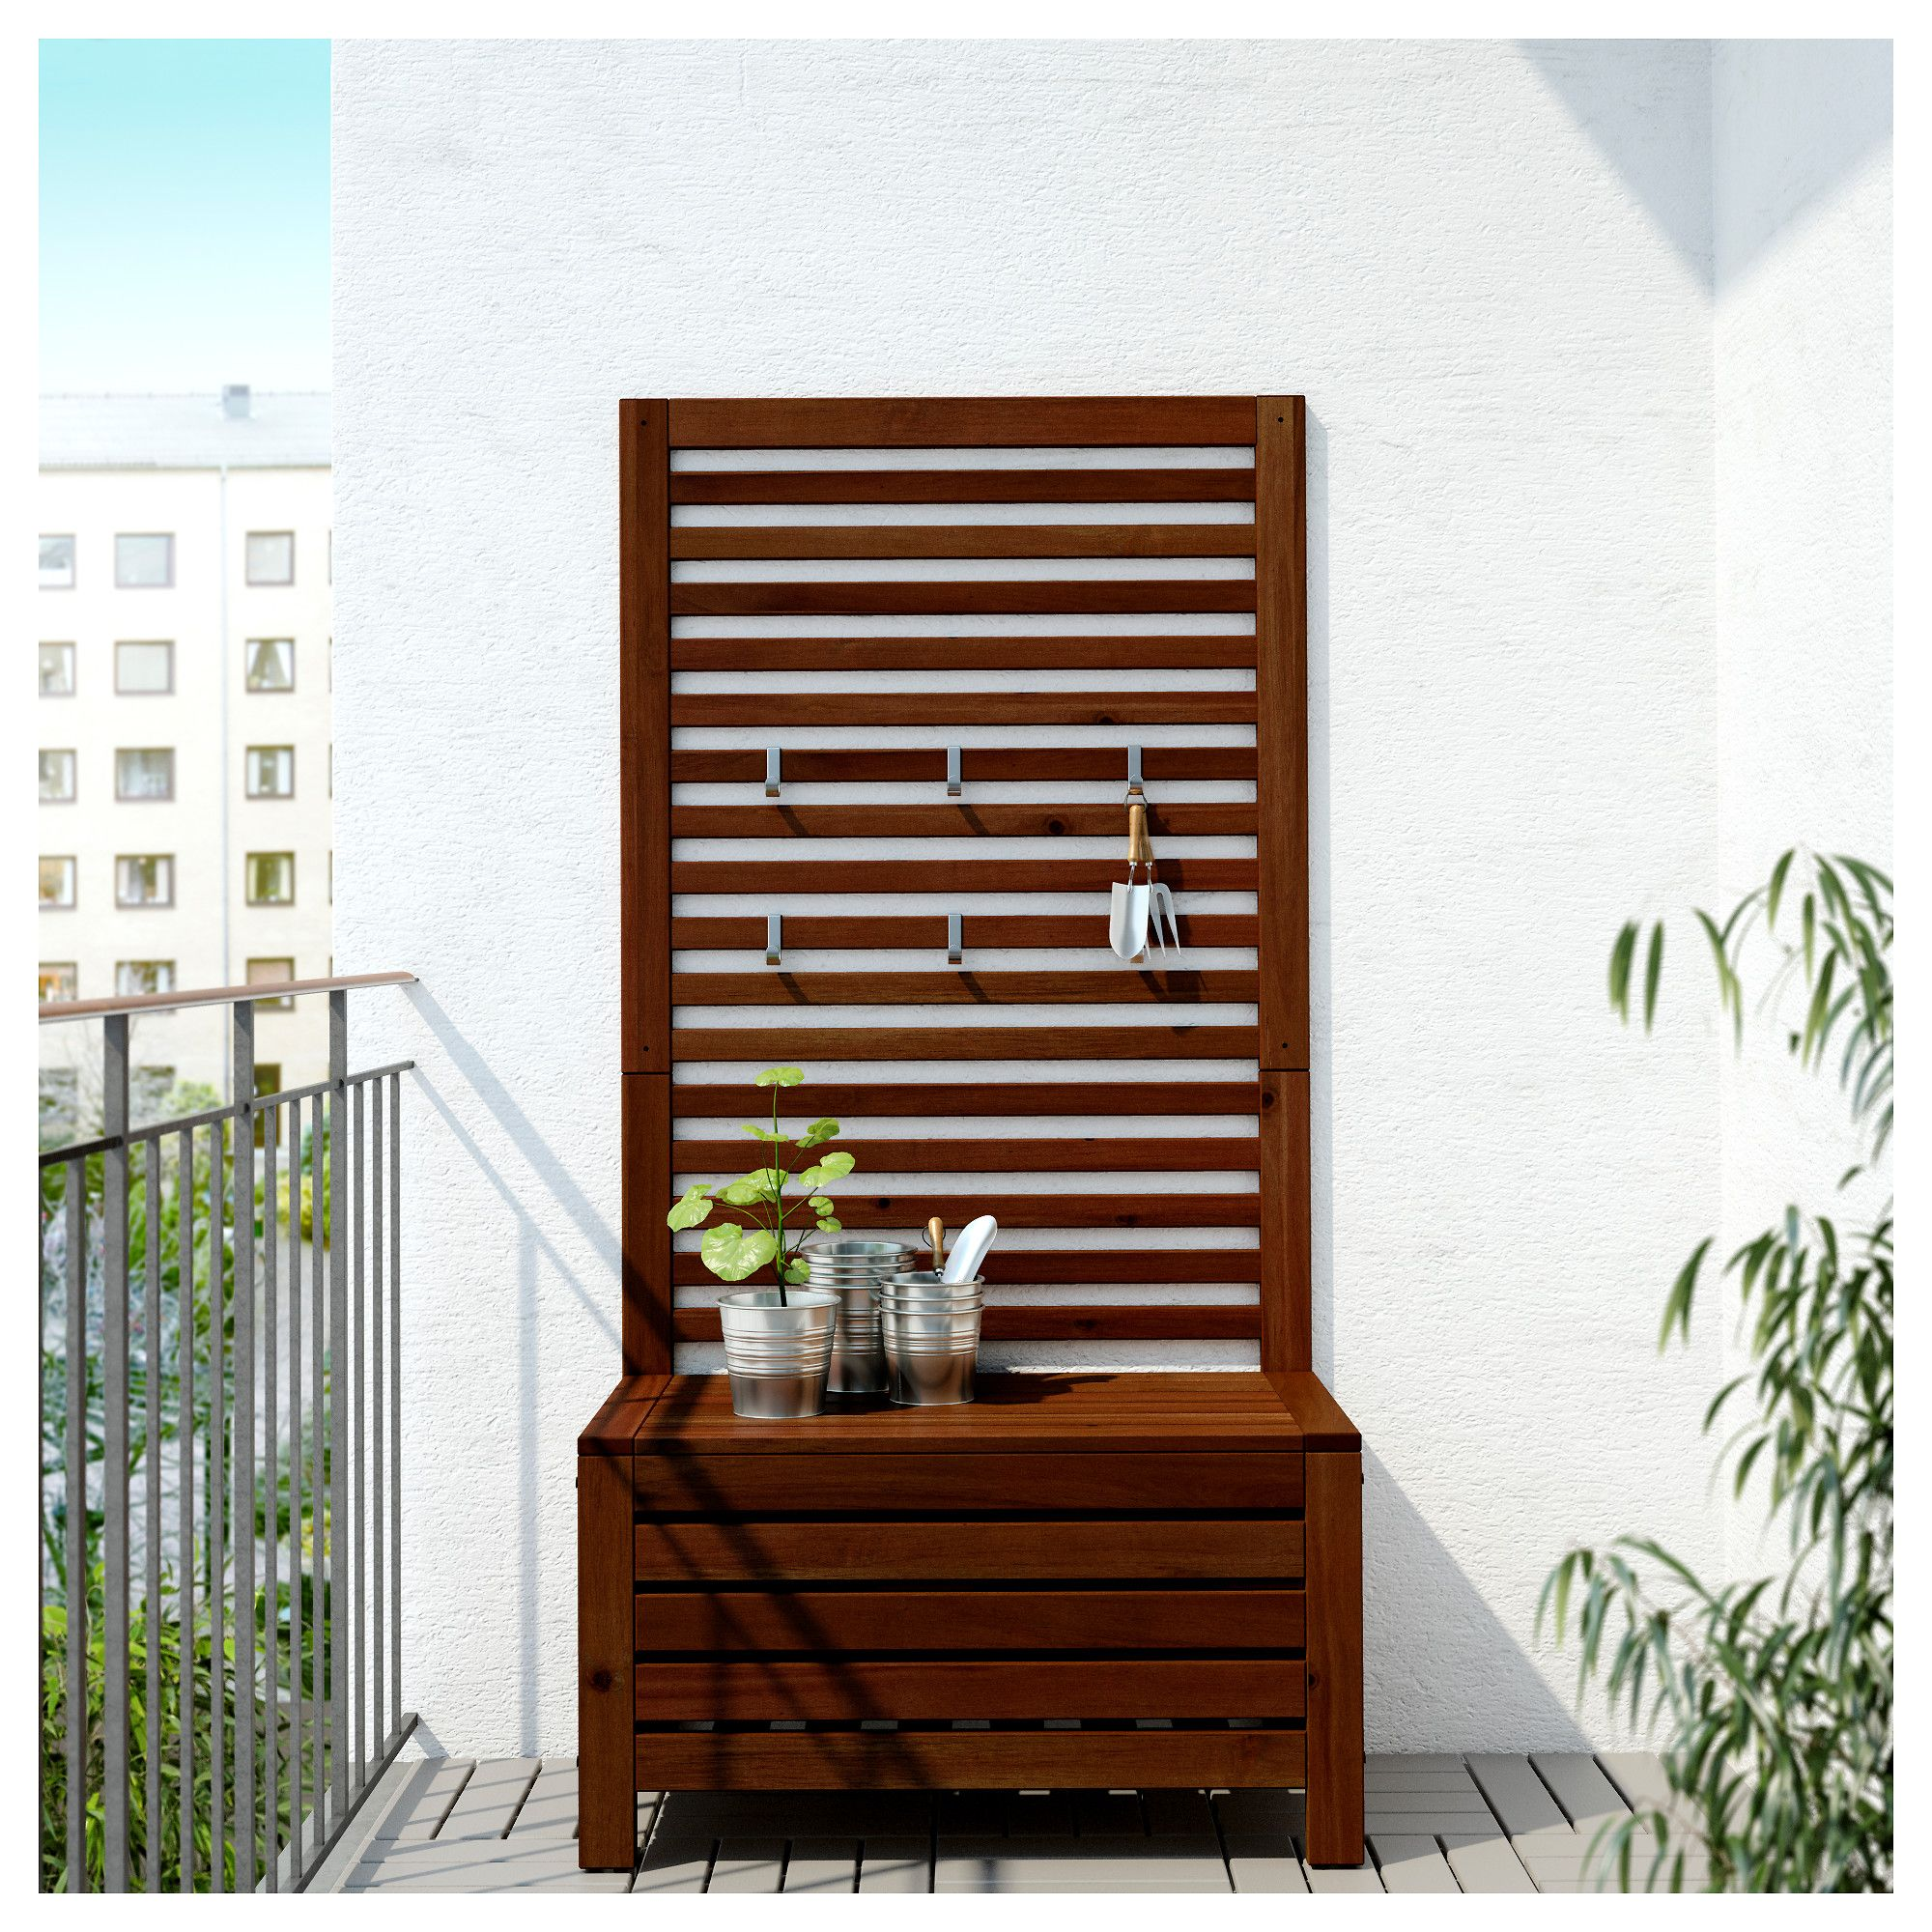 Ikea Usa All Products: ÄPPLARÖ Bench With Wall Panel, Outdoor Brown